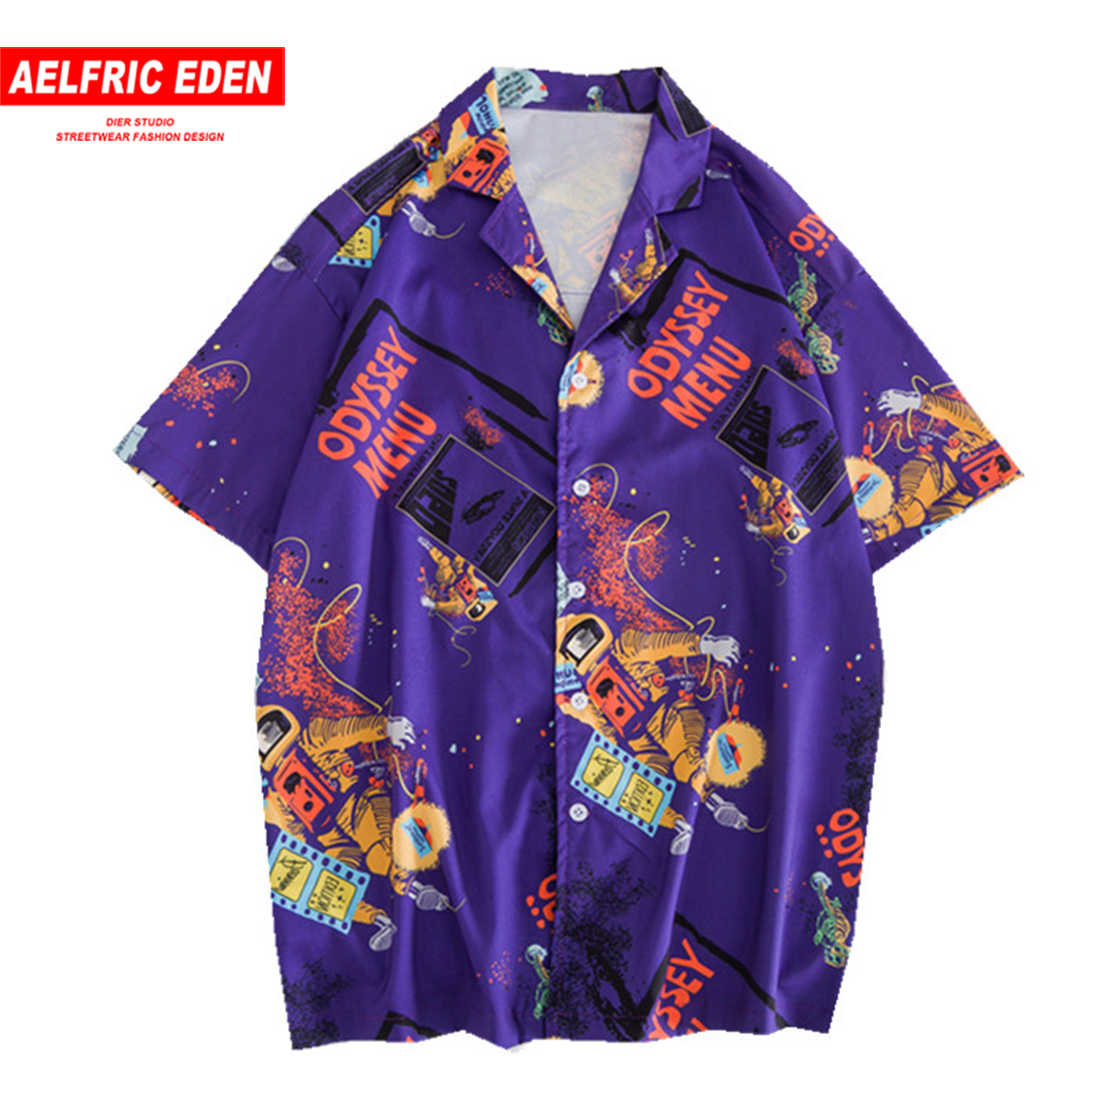 Aelfric Eden 2019 Summer Shirts Men Hip Hop Streetwear Fashion Casual Tops Astronaut Print Hawaii Shirt Short Sleeve Beachwear